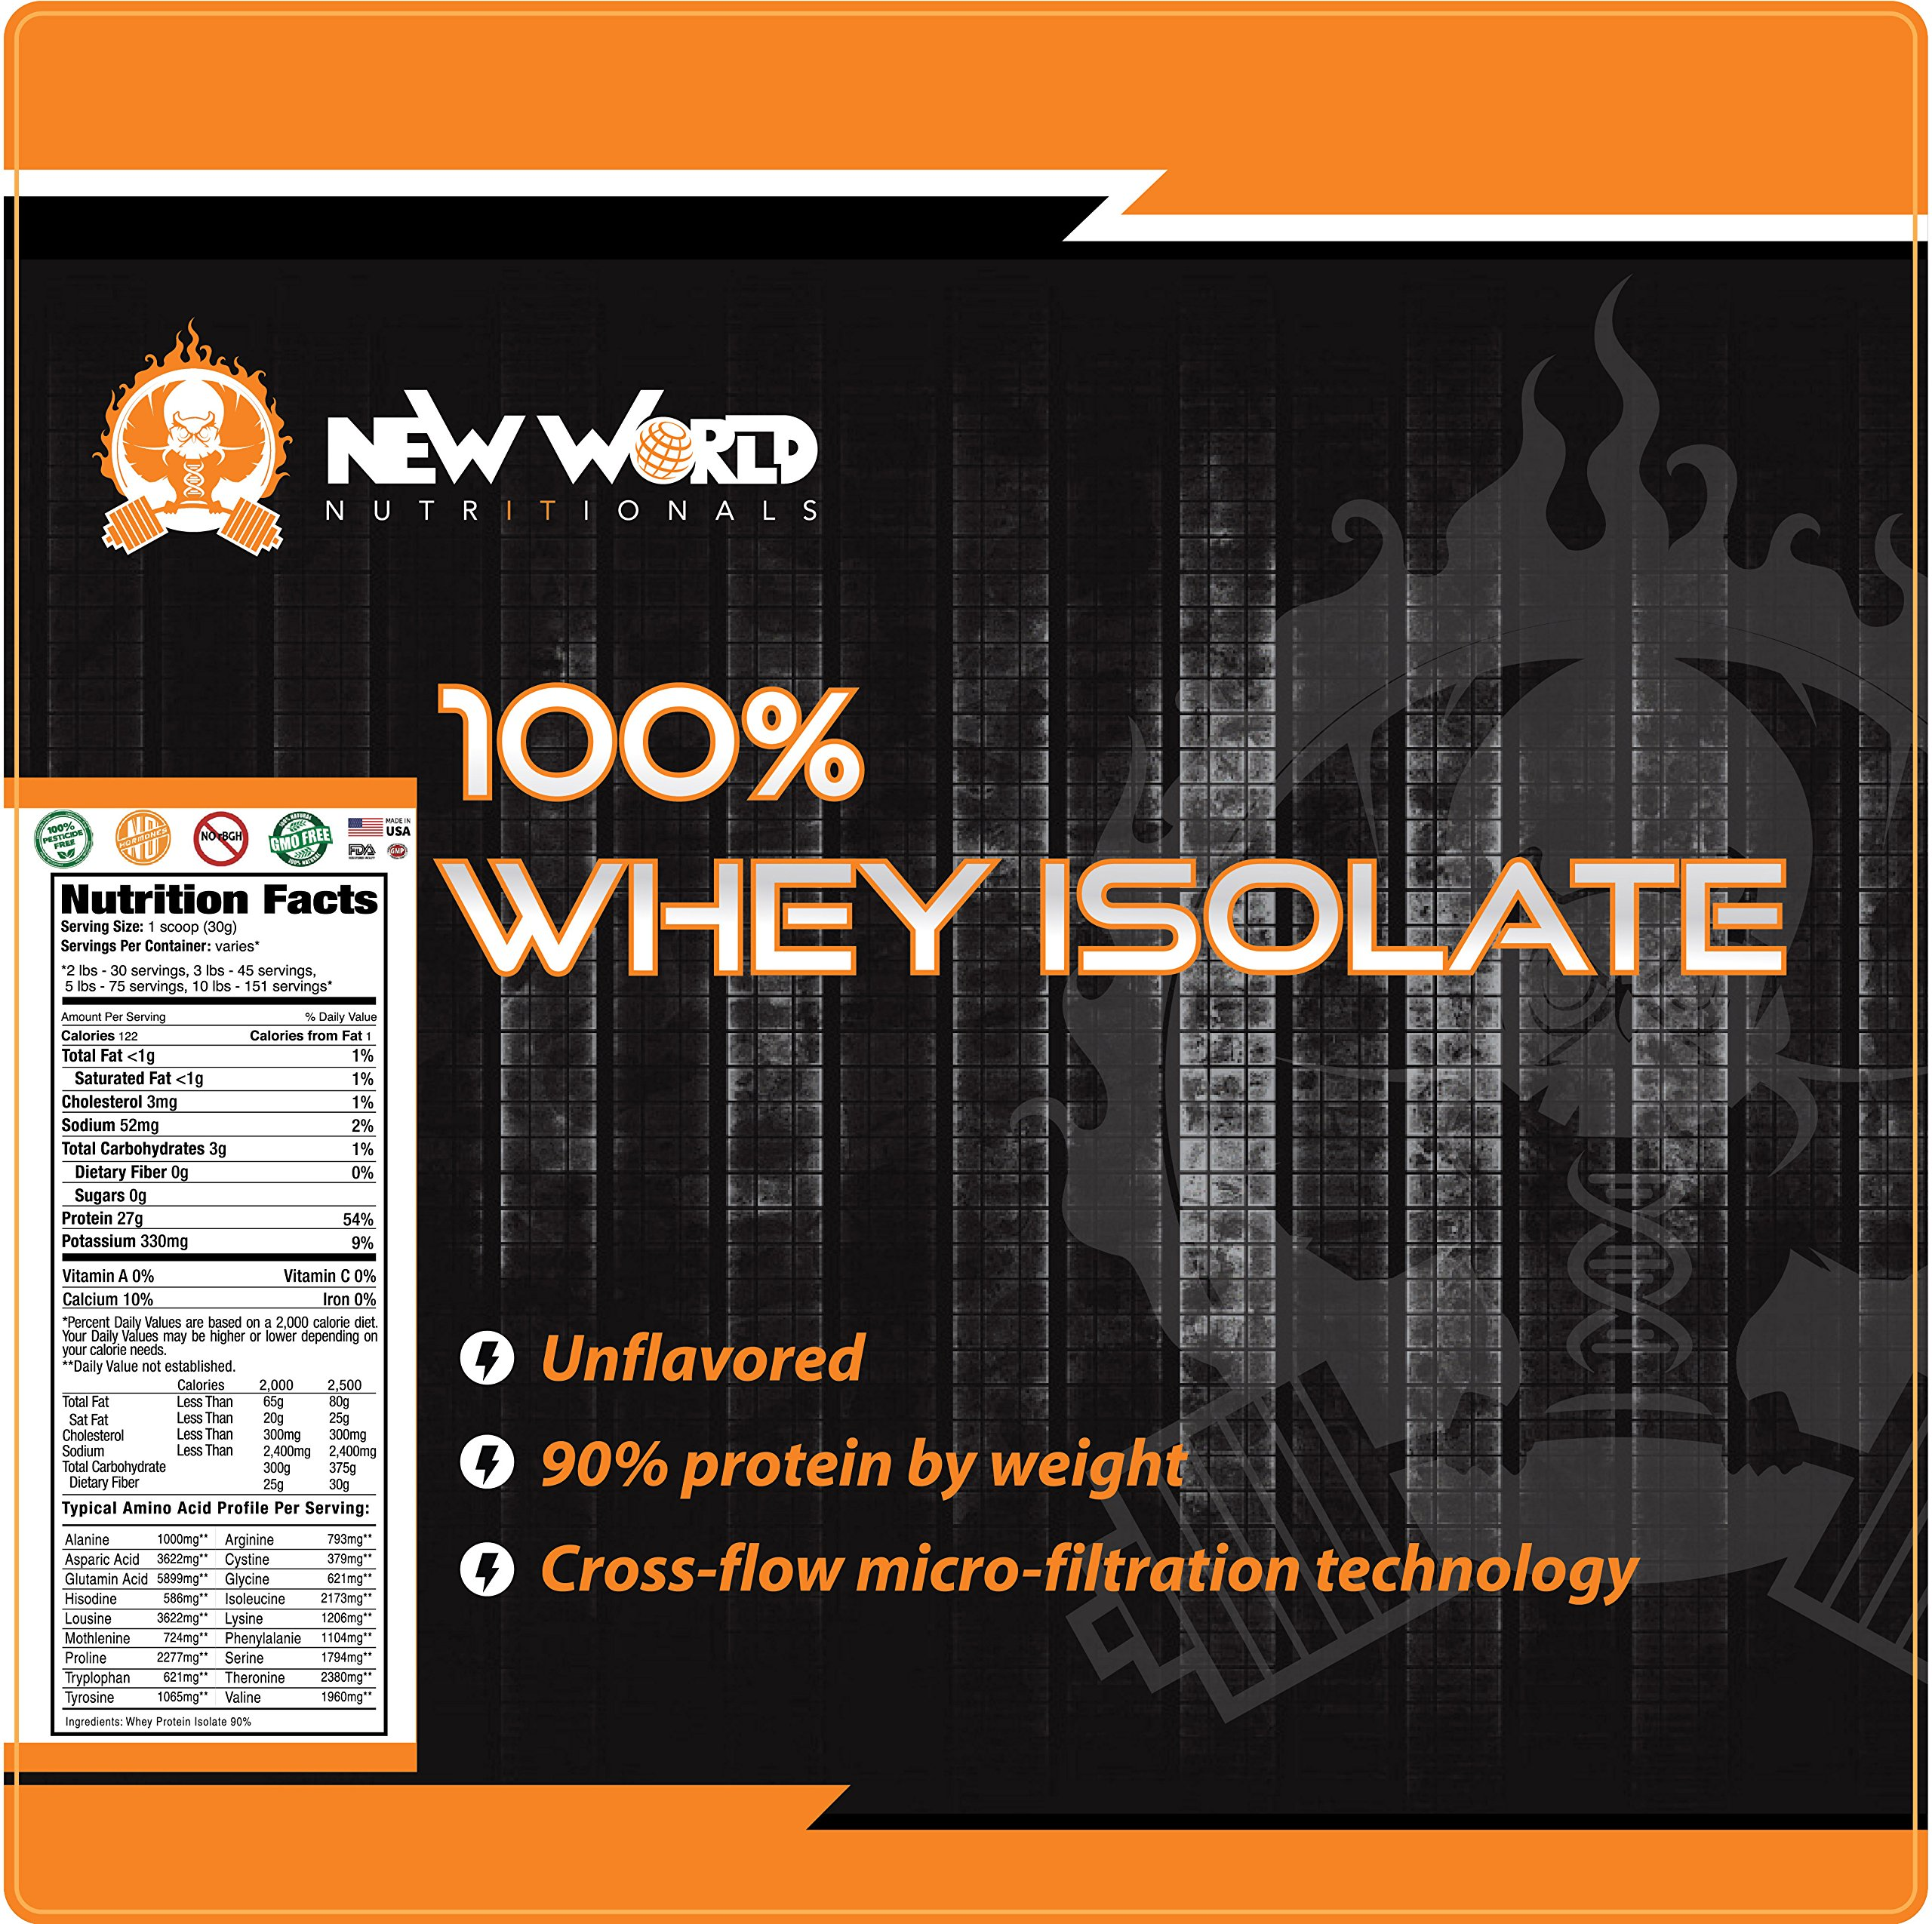 New World Nutritionals Low-Carb 100% Natural Whey Isolate, Supports Lean Muscle Development, Factory Direct,Outrageously Delicious (Unflavored, 10 Pound) by New World Nutritionals (Image #3)